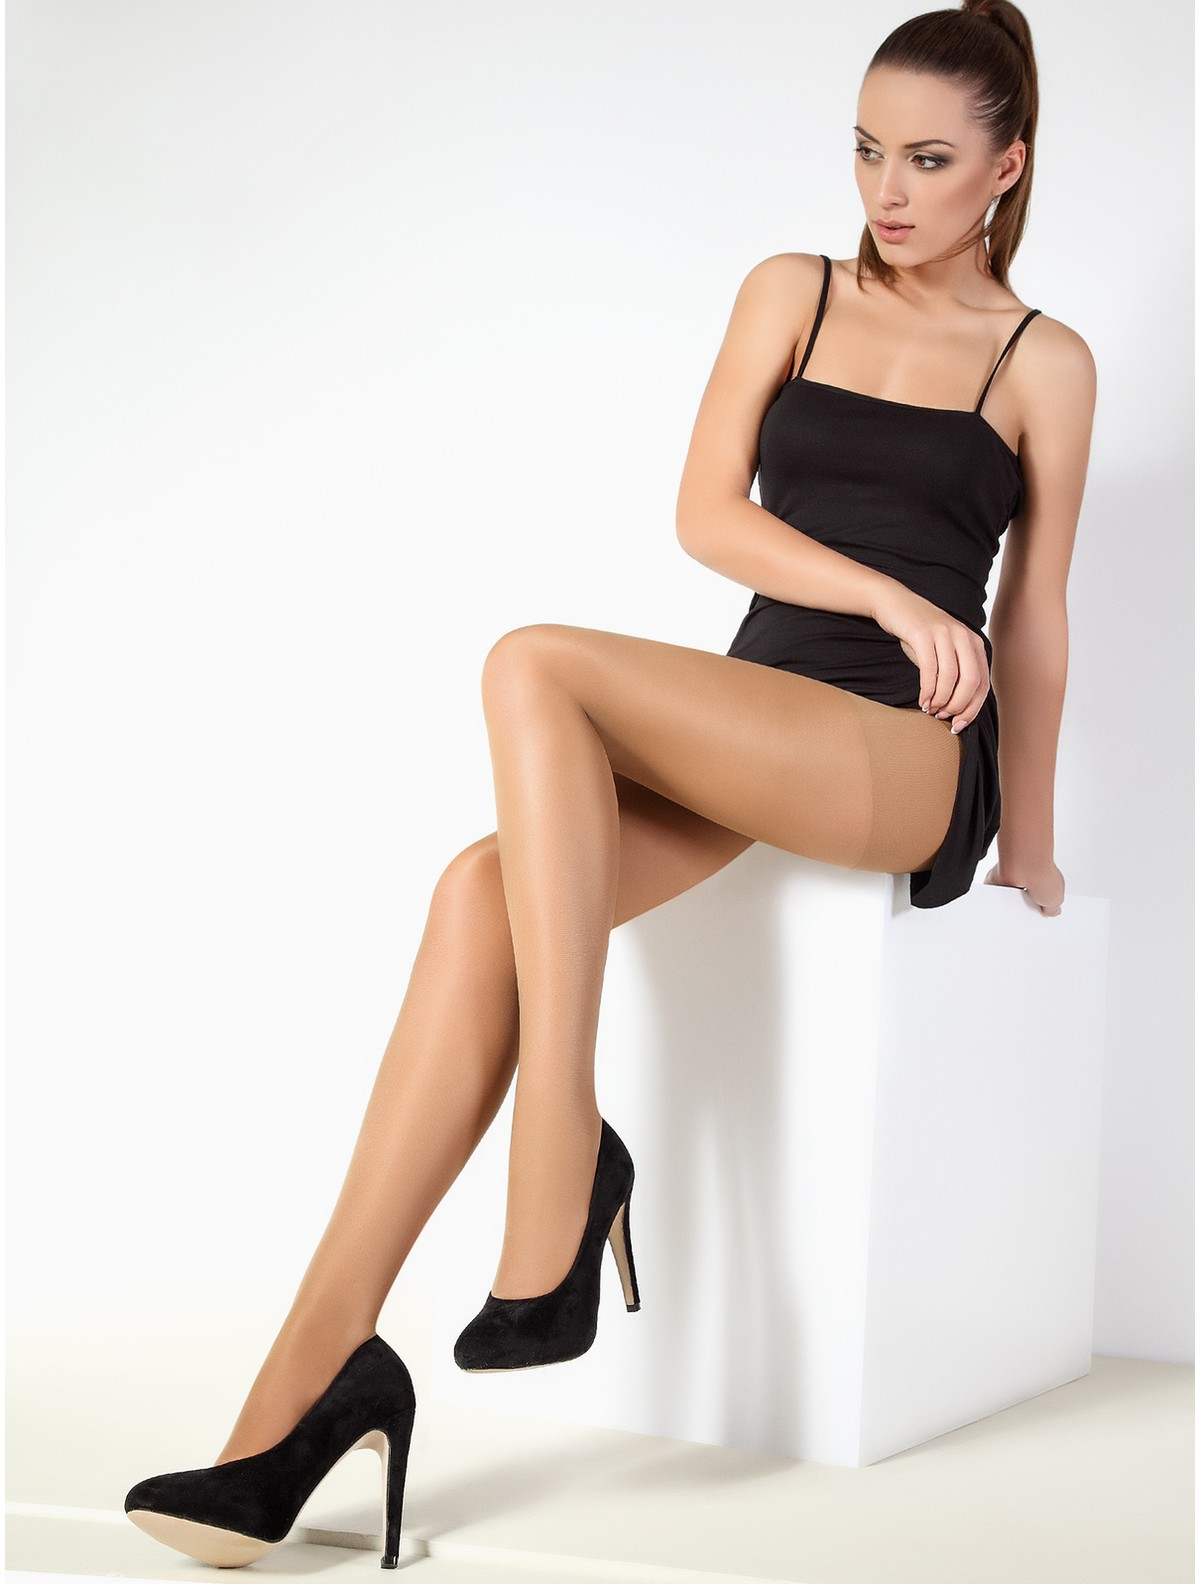 Order now online! Your favourite tights, socks, nylon stockings and stay-ups from HOSIERIA's great variety of goods.